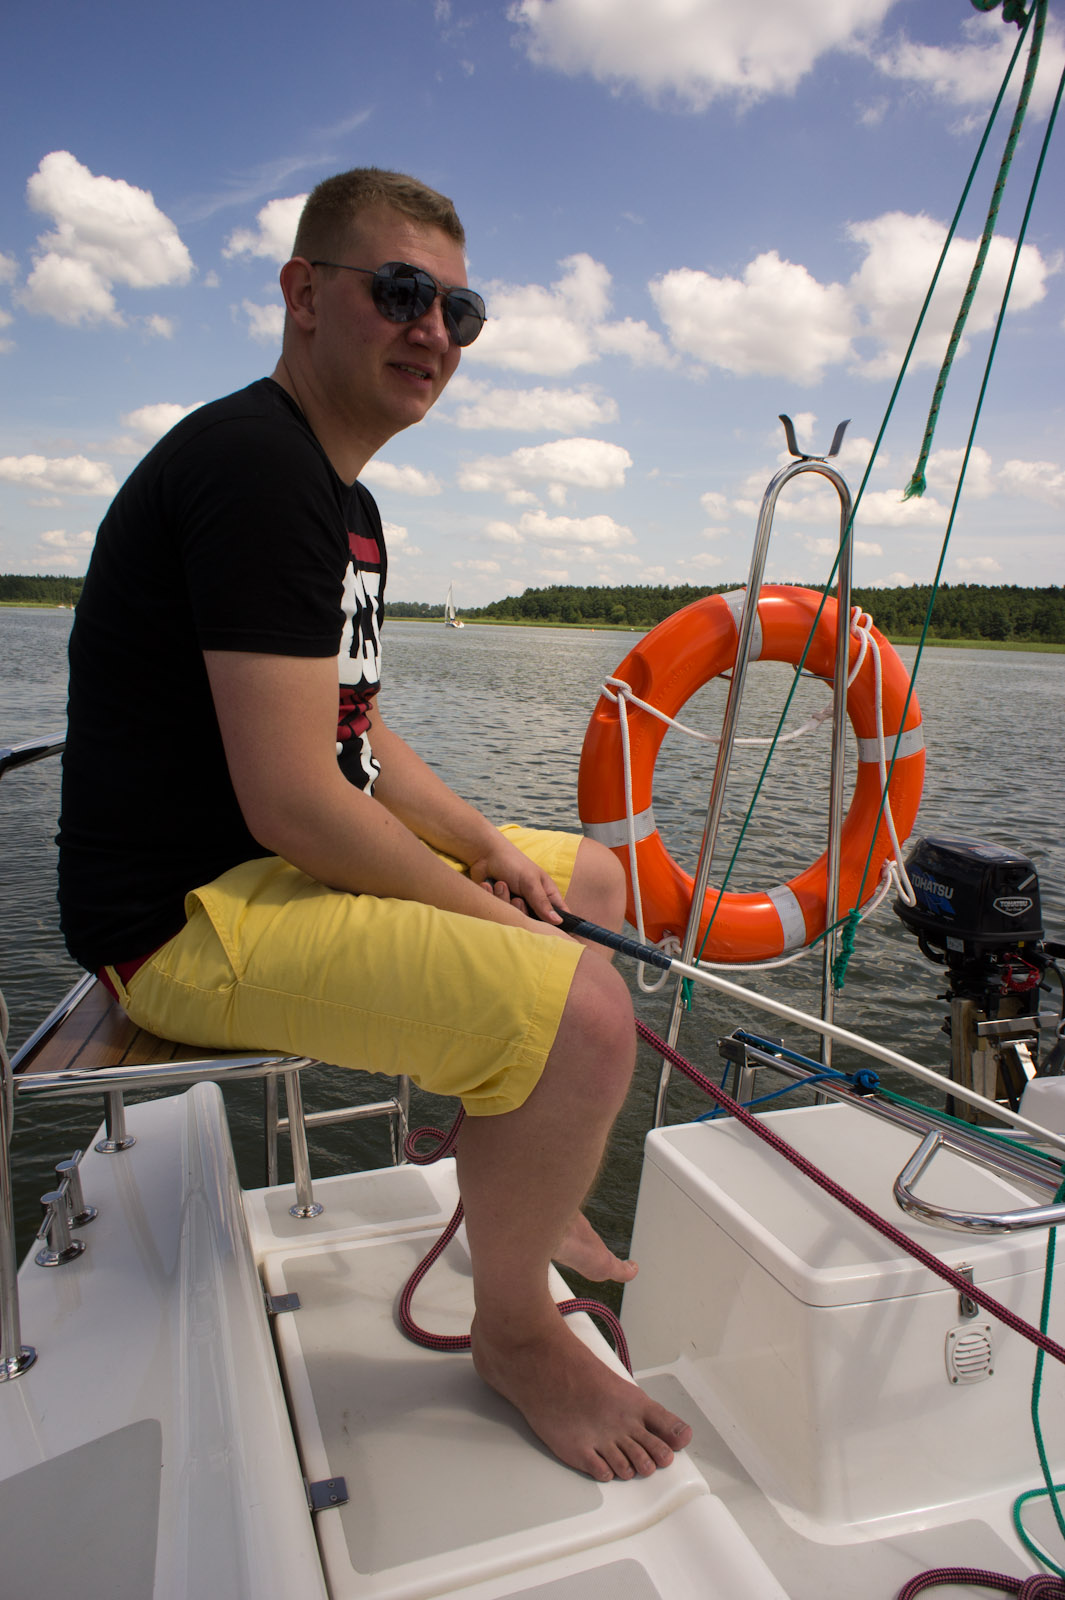 Łukasz at the helm